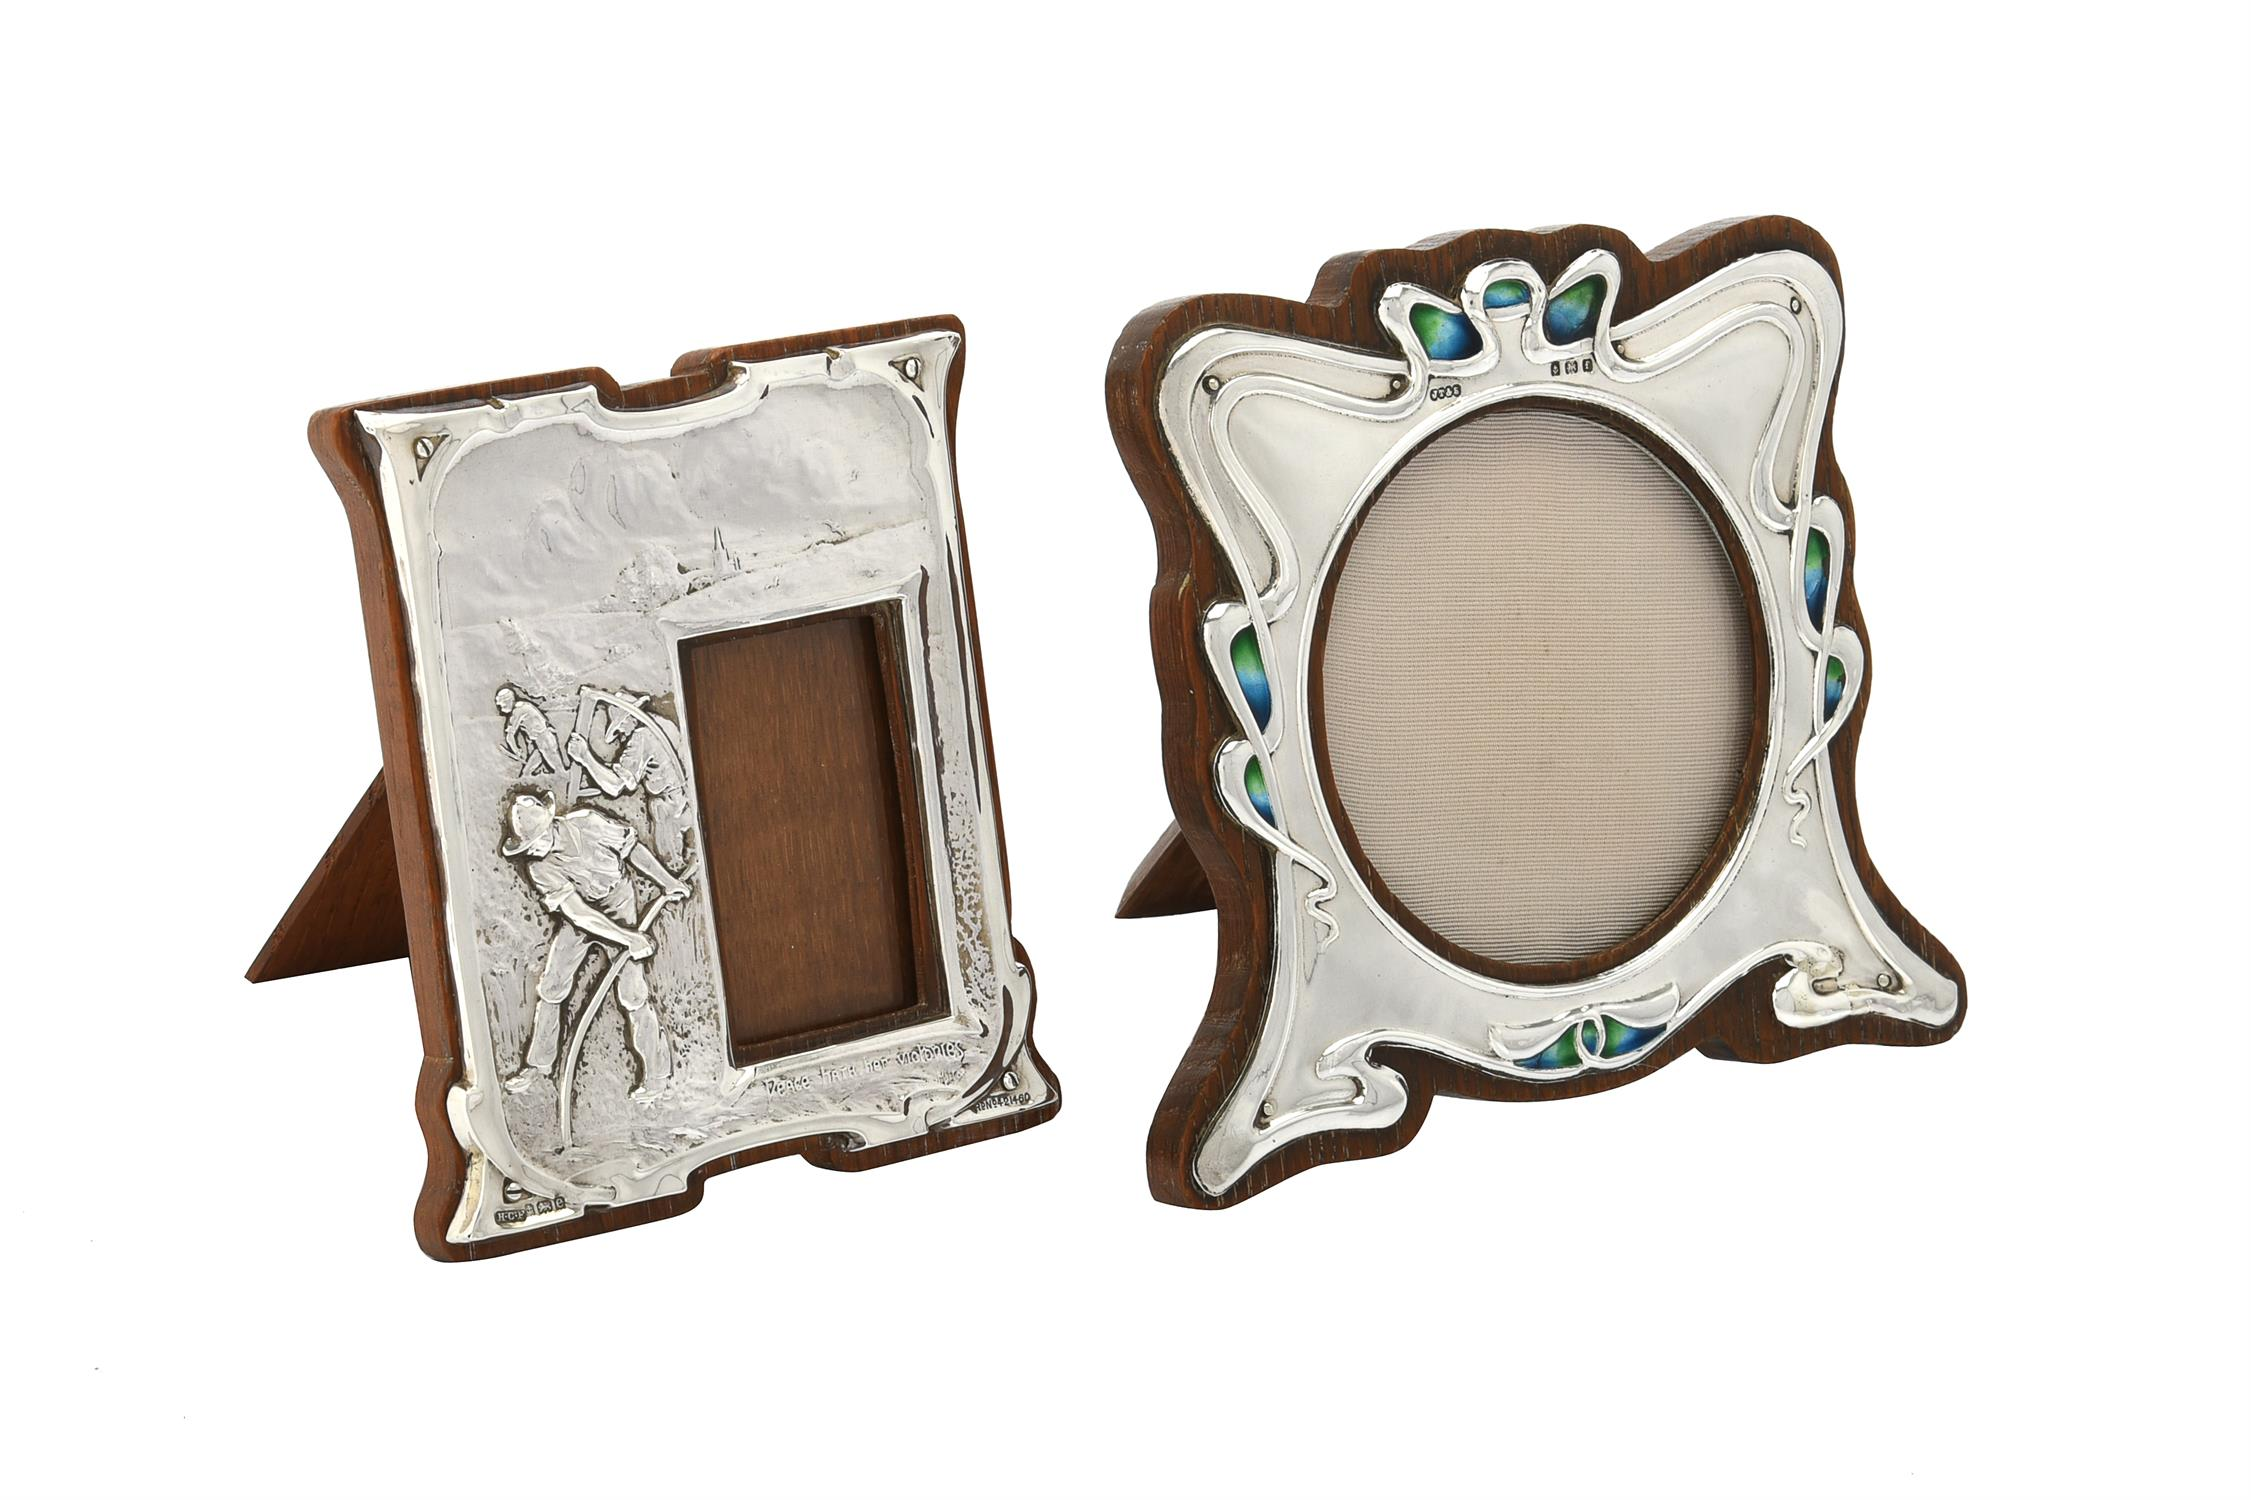 An Edwardian silver mounted photo frame by Henry Charles Freeman